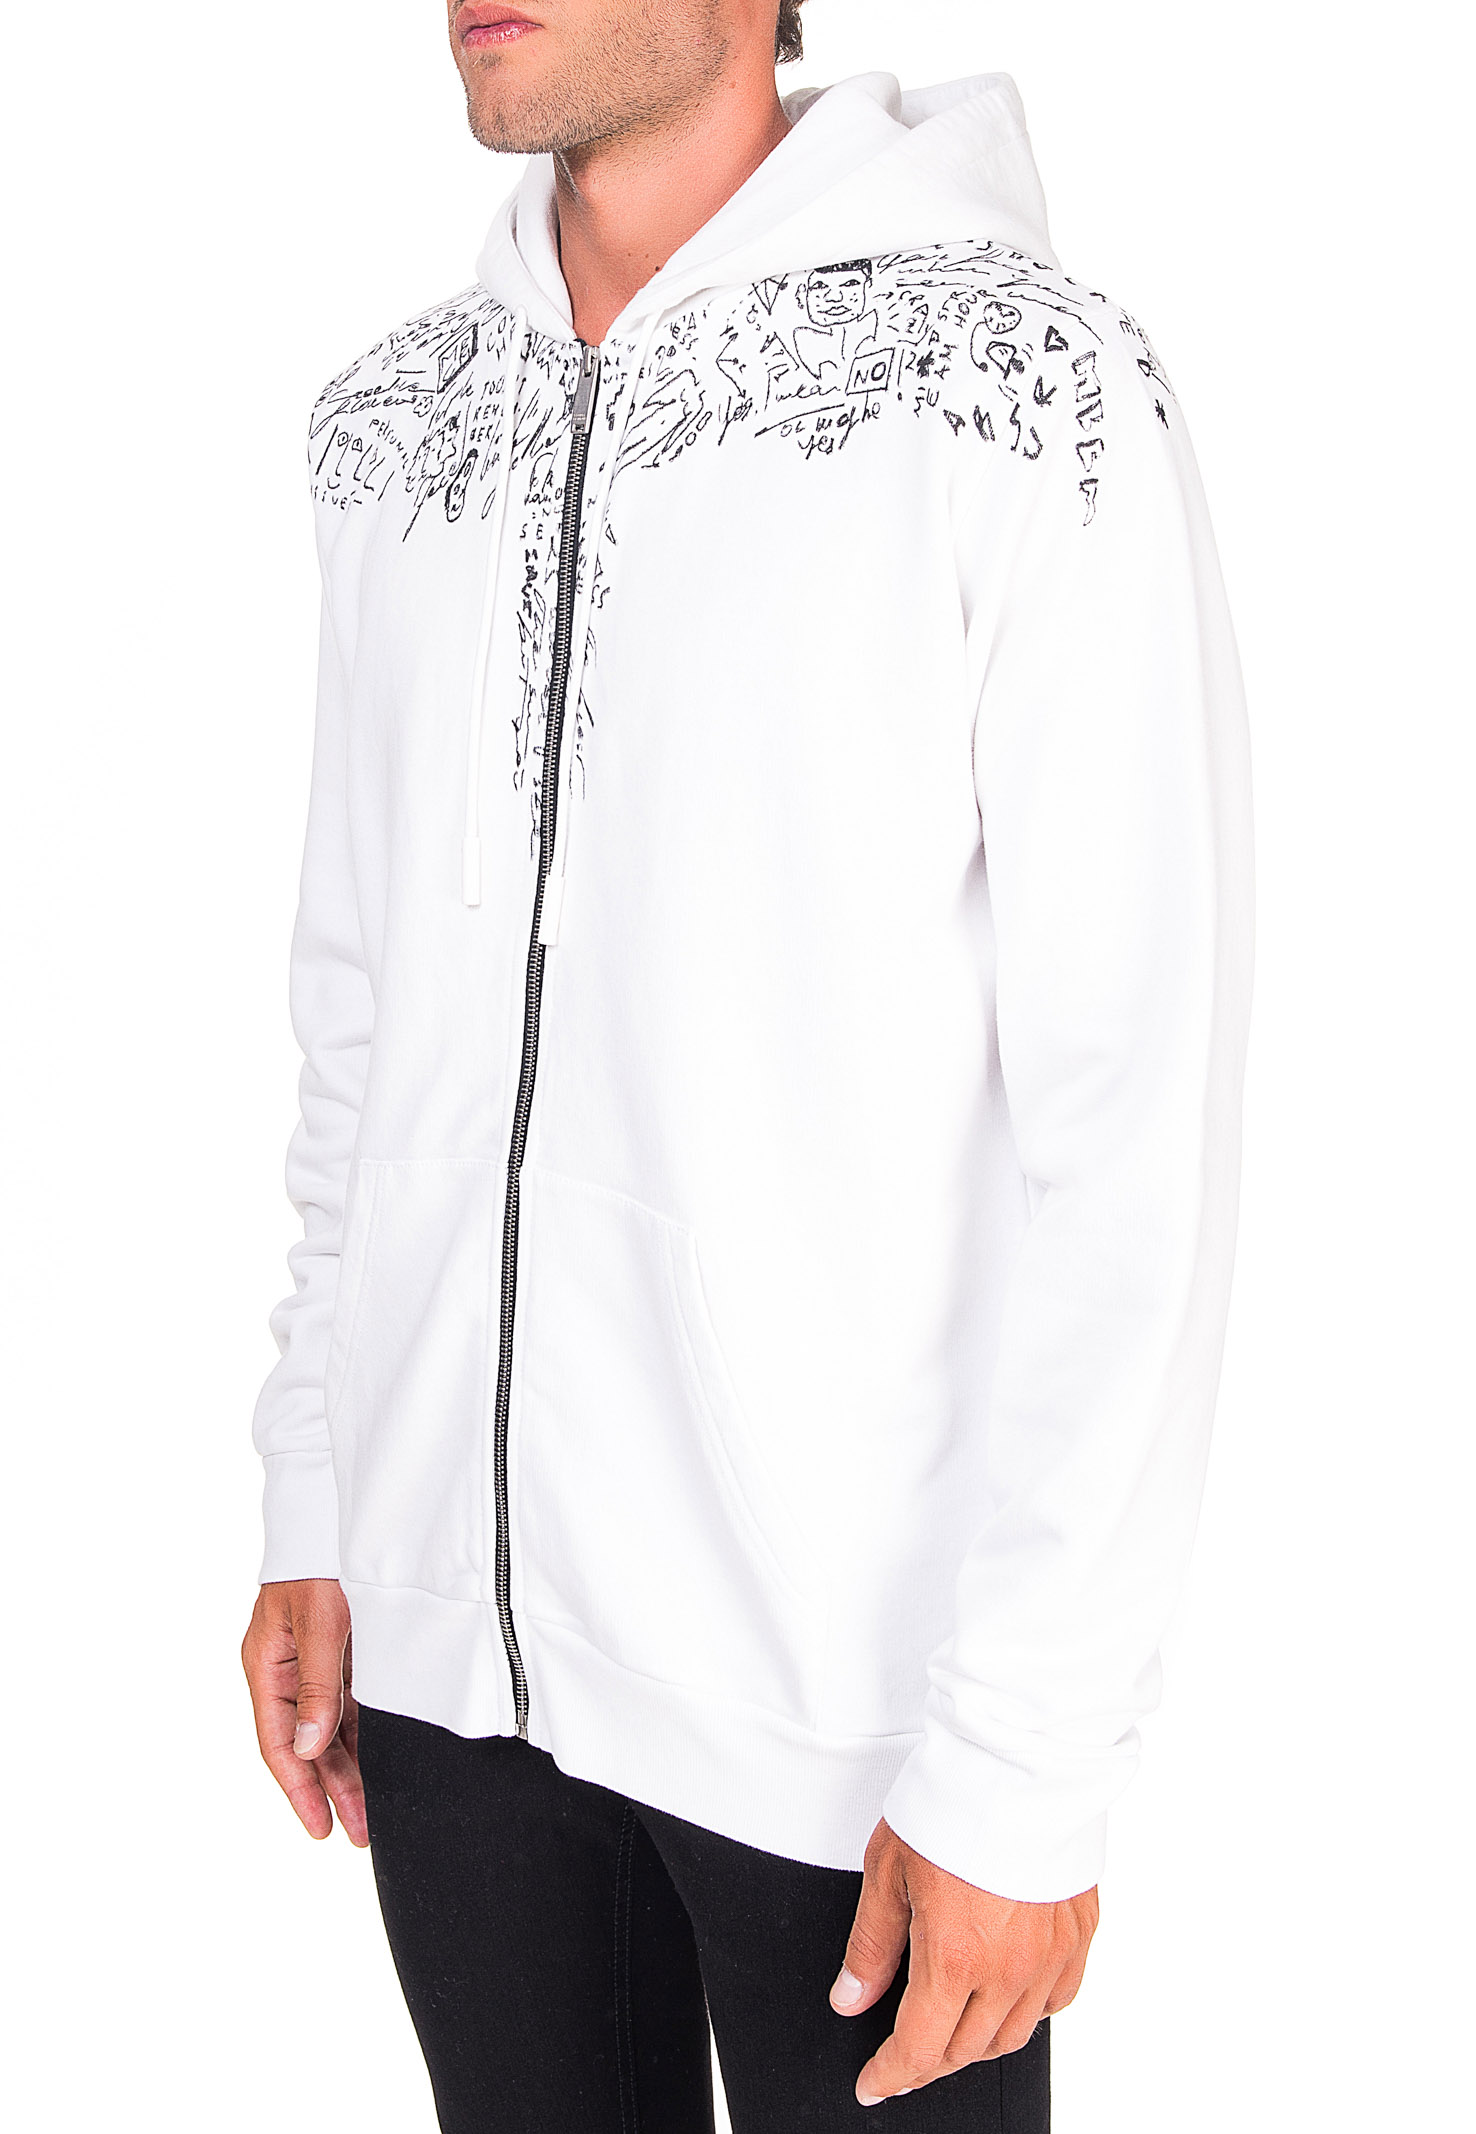 WHITE COTTON SWEATSHIRT WITH SKETCHES WINGS PRINT MARCELO BURLON | Sweatshirts | CMBE001E20FLE0040110